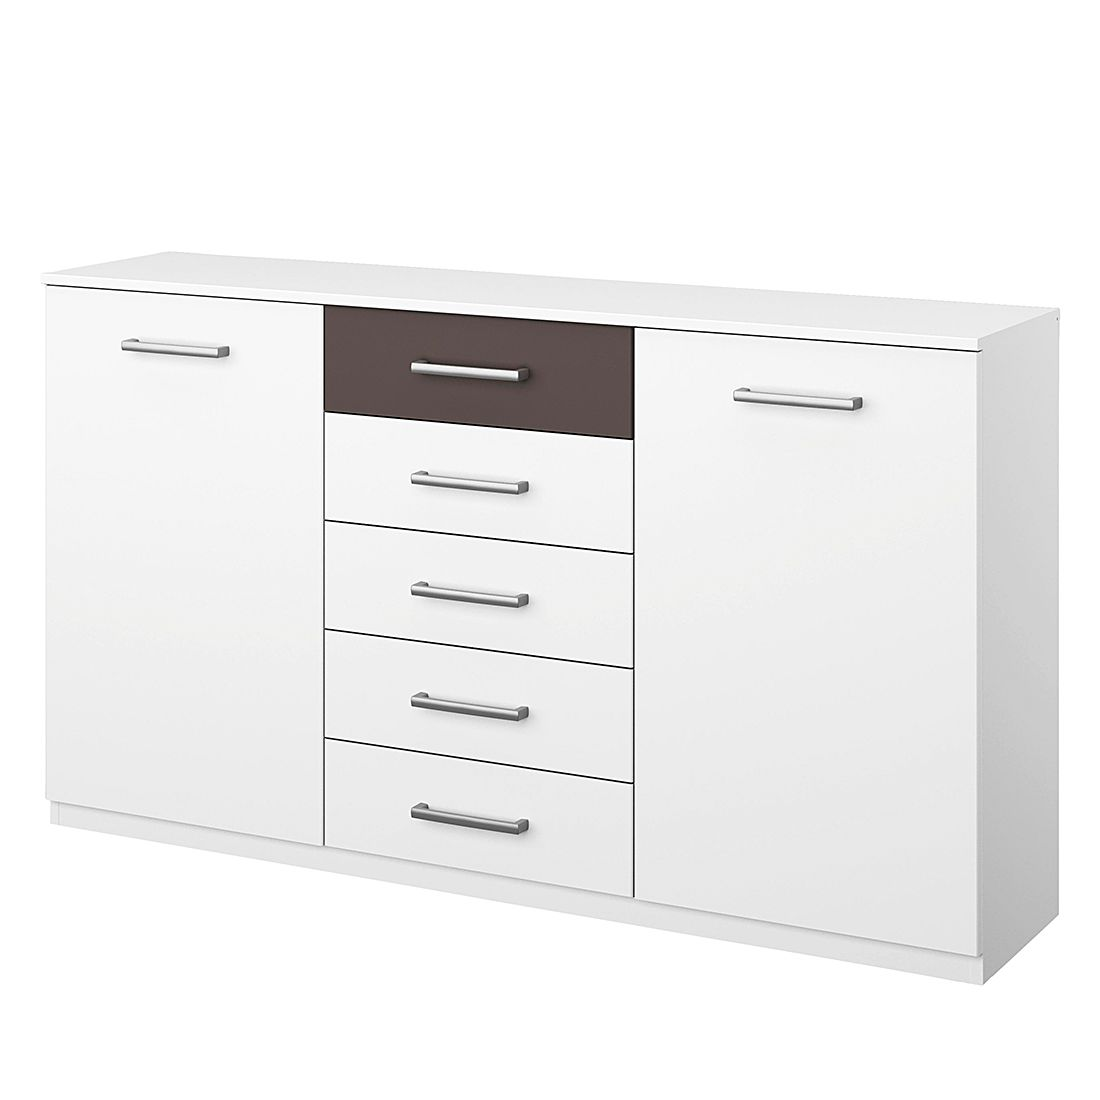 Commode Barcelona II - Blanc alpin / Gris lave, Rauch Packs